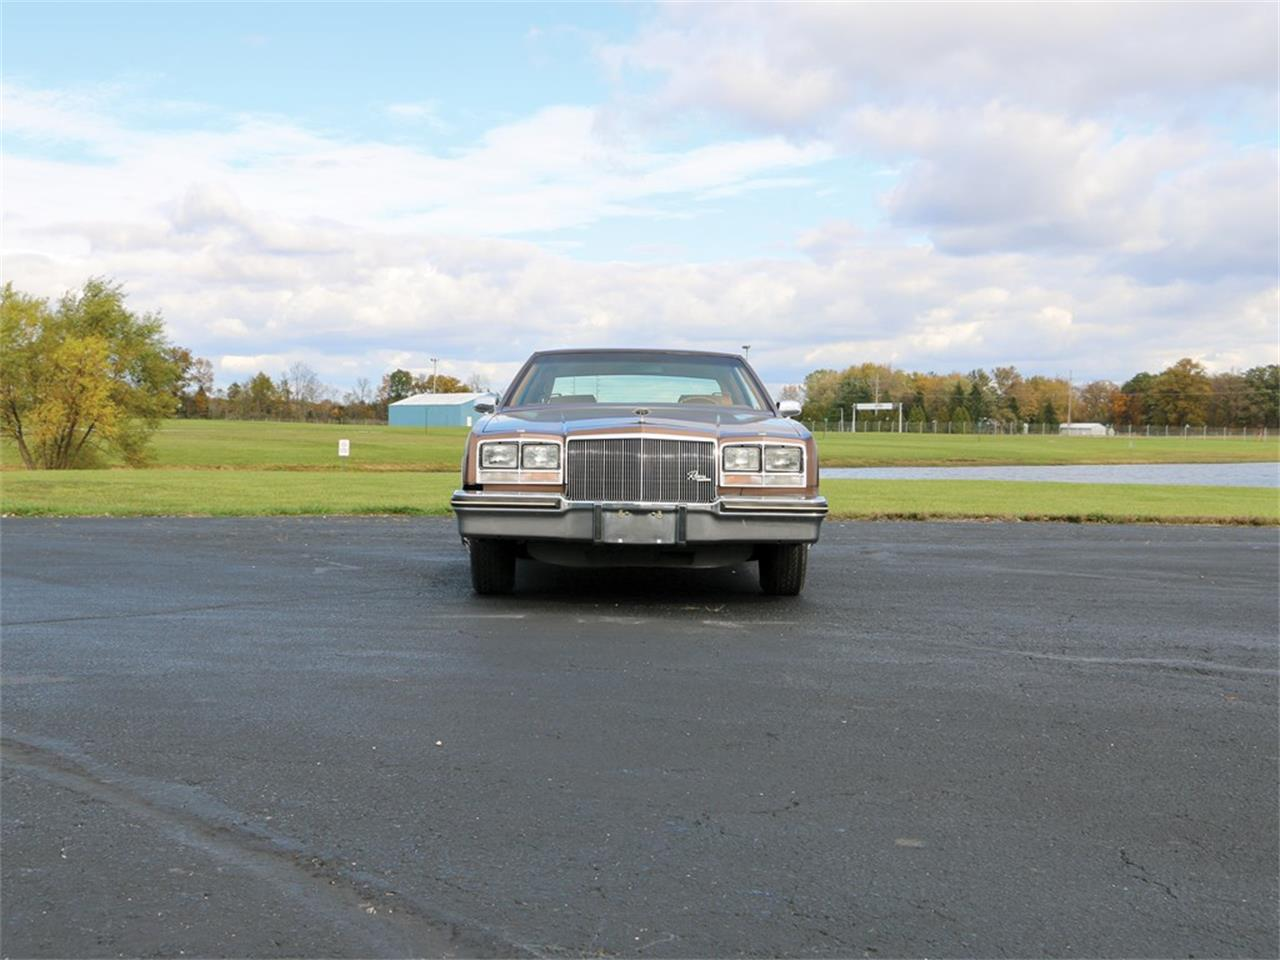 Large Picture of 1979 Riviera located in Auburn Indiana Auction Vehicle - N4W0